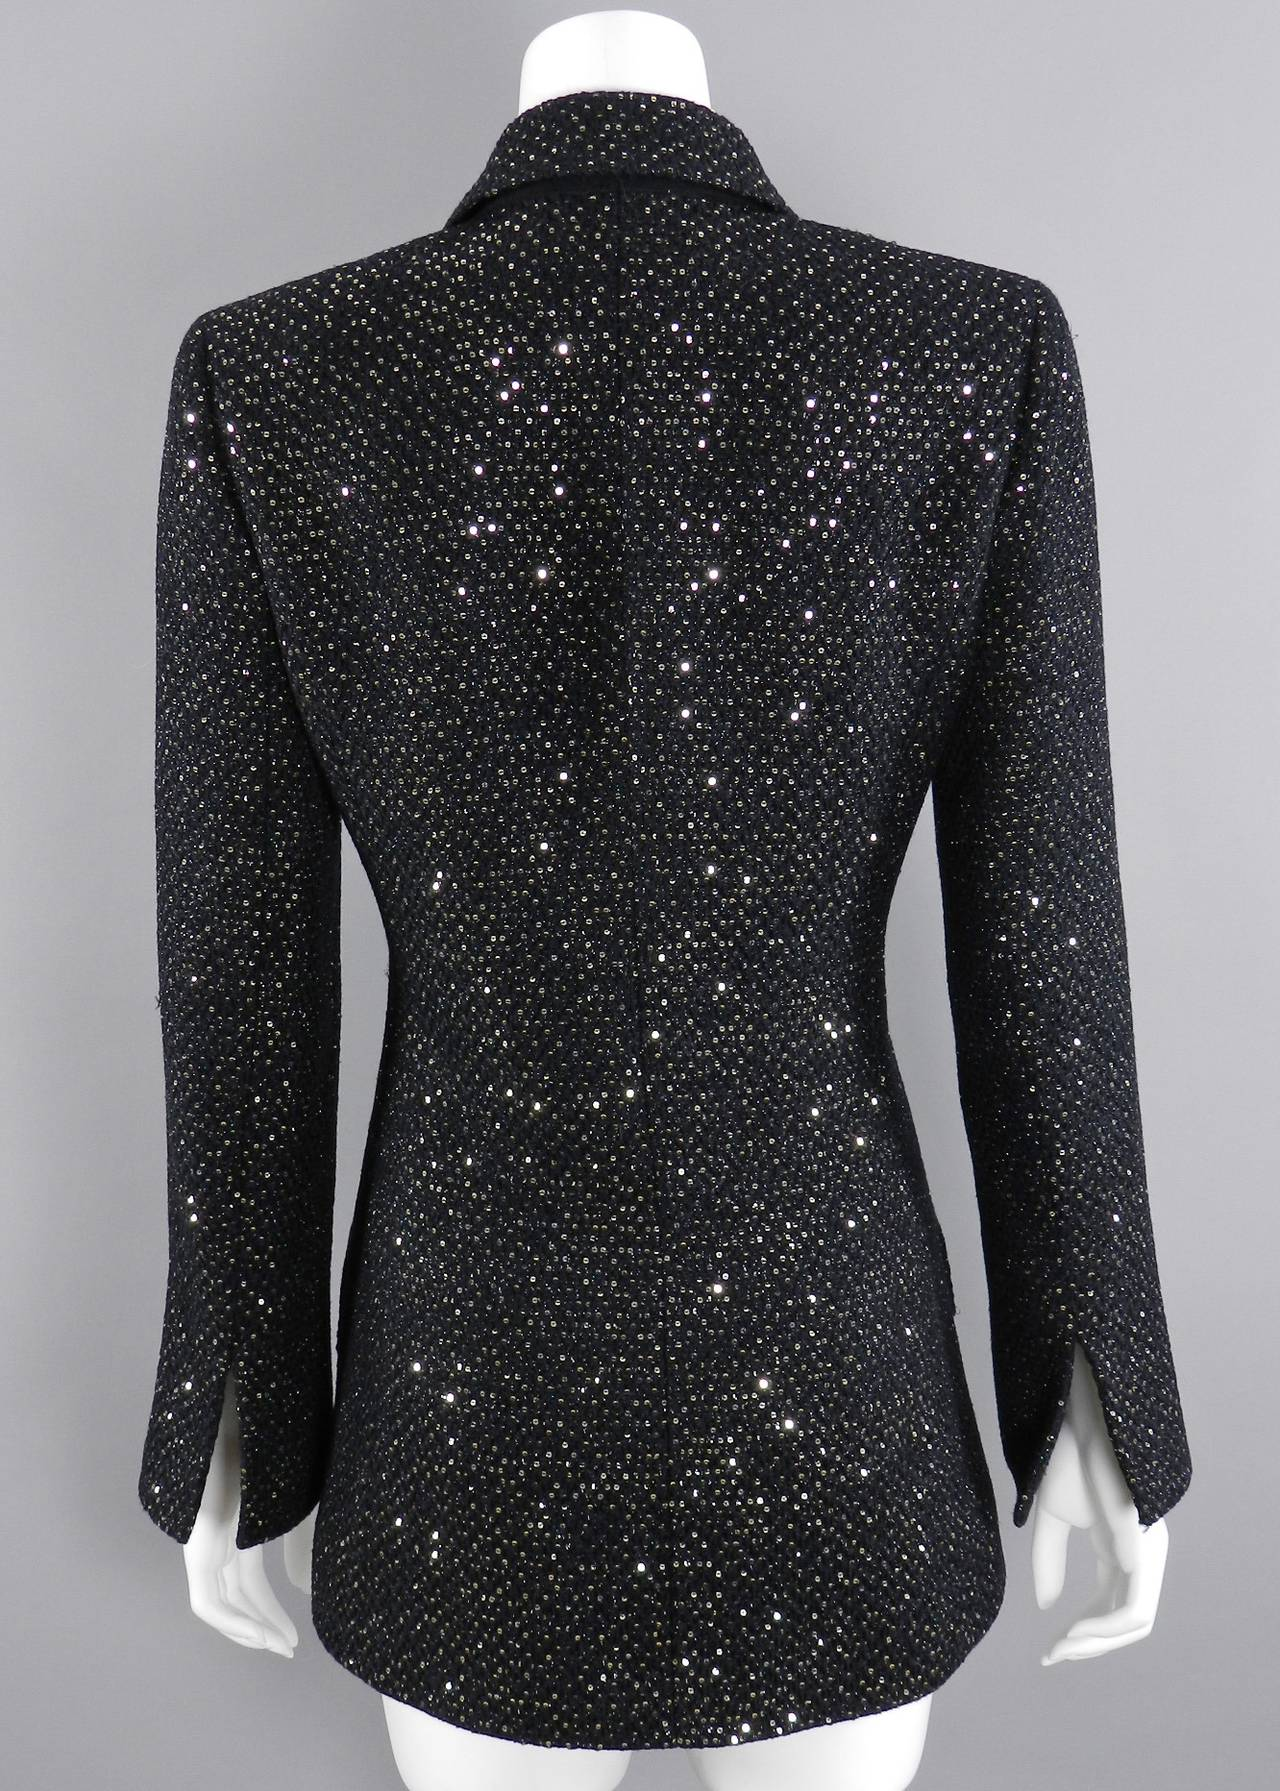 Chanel 11C Black Ad Campaign / Runway Jacket with Silver Sequins 4